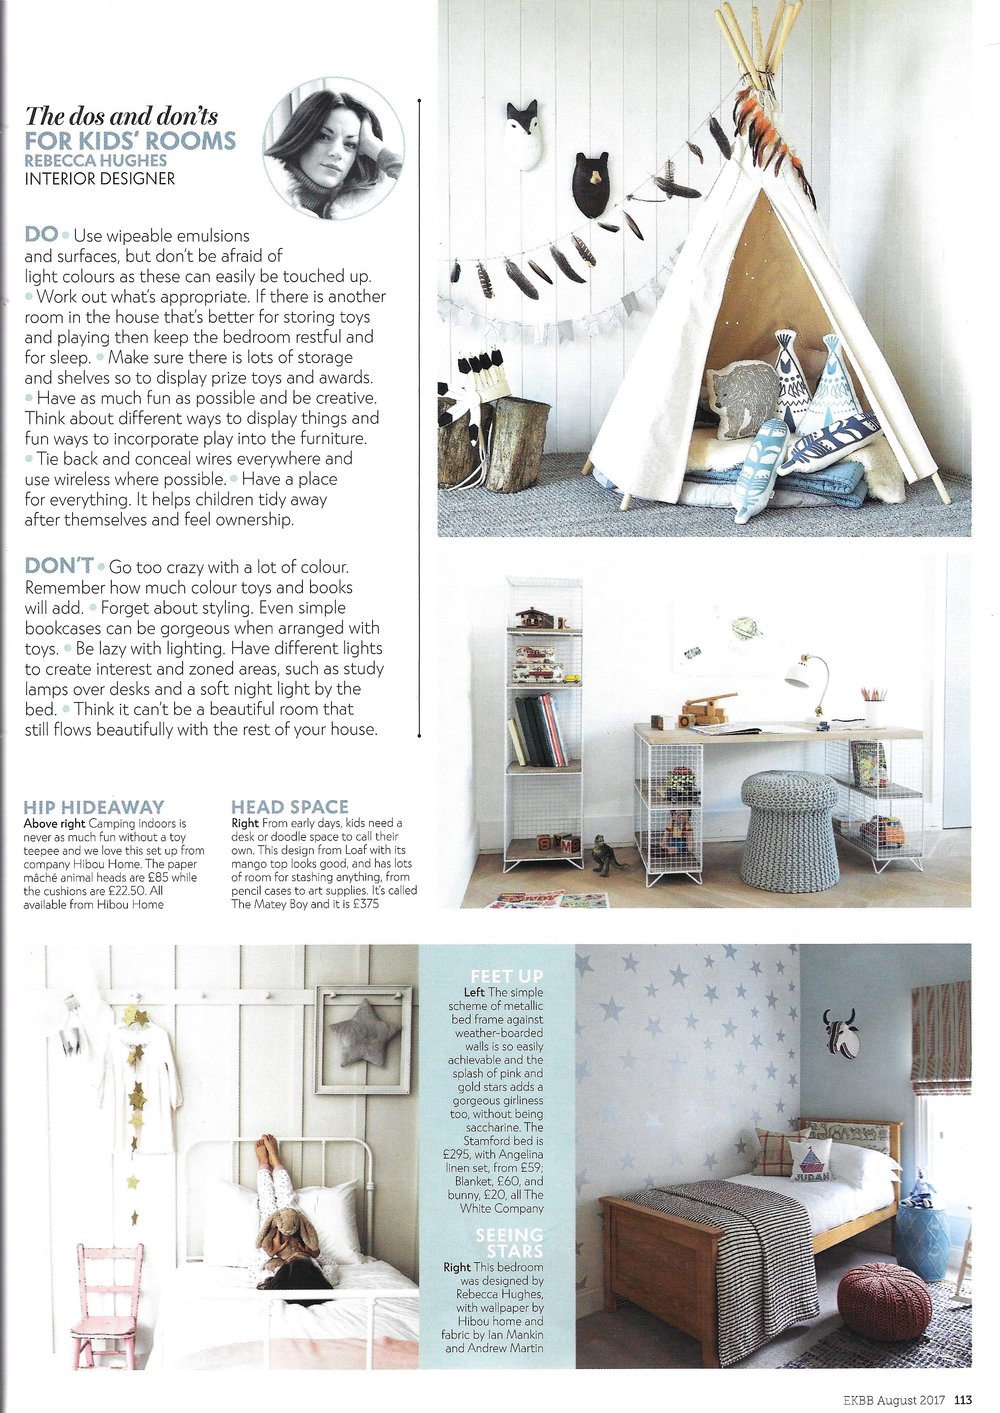 Essential Kitchen Bathroom Bedroom August 2017 page 113